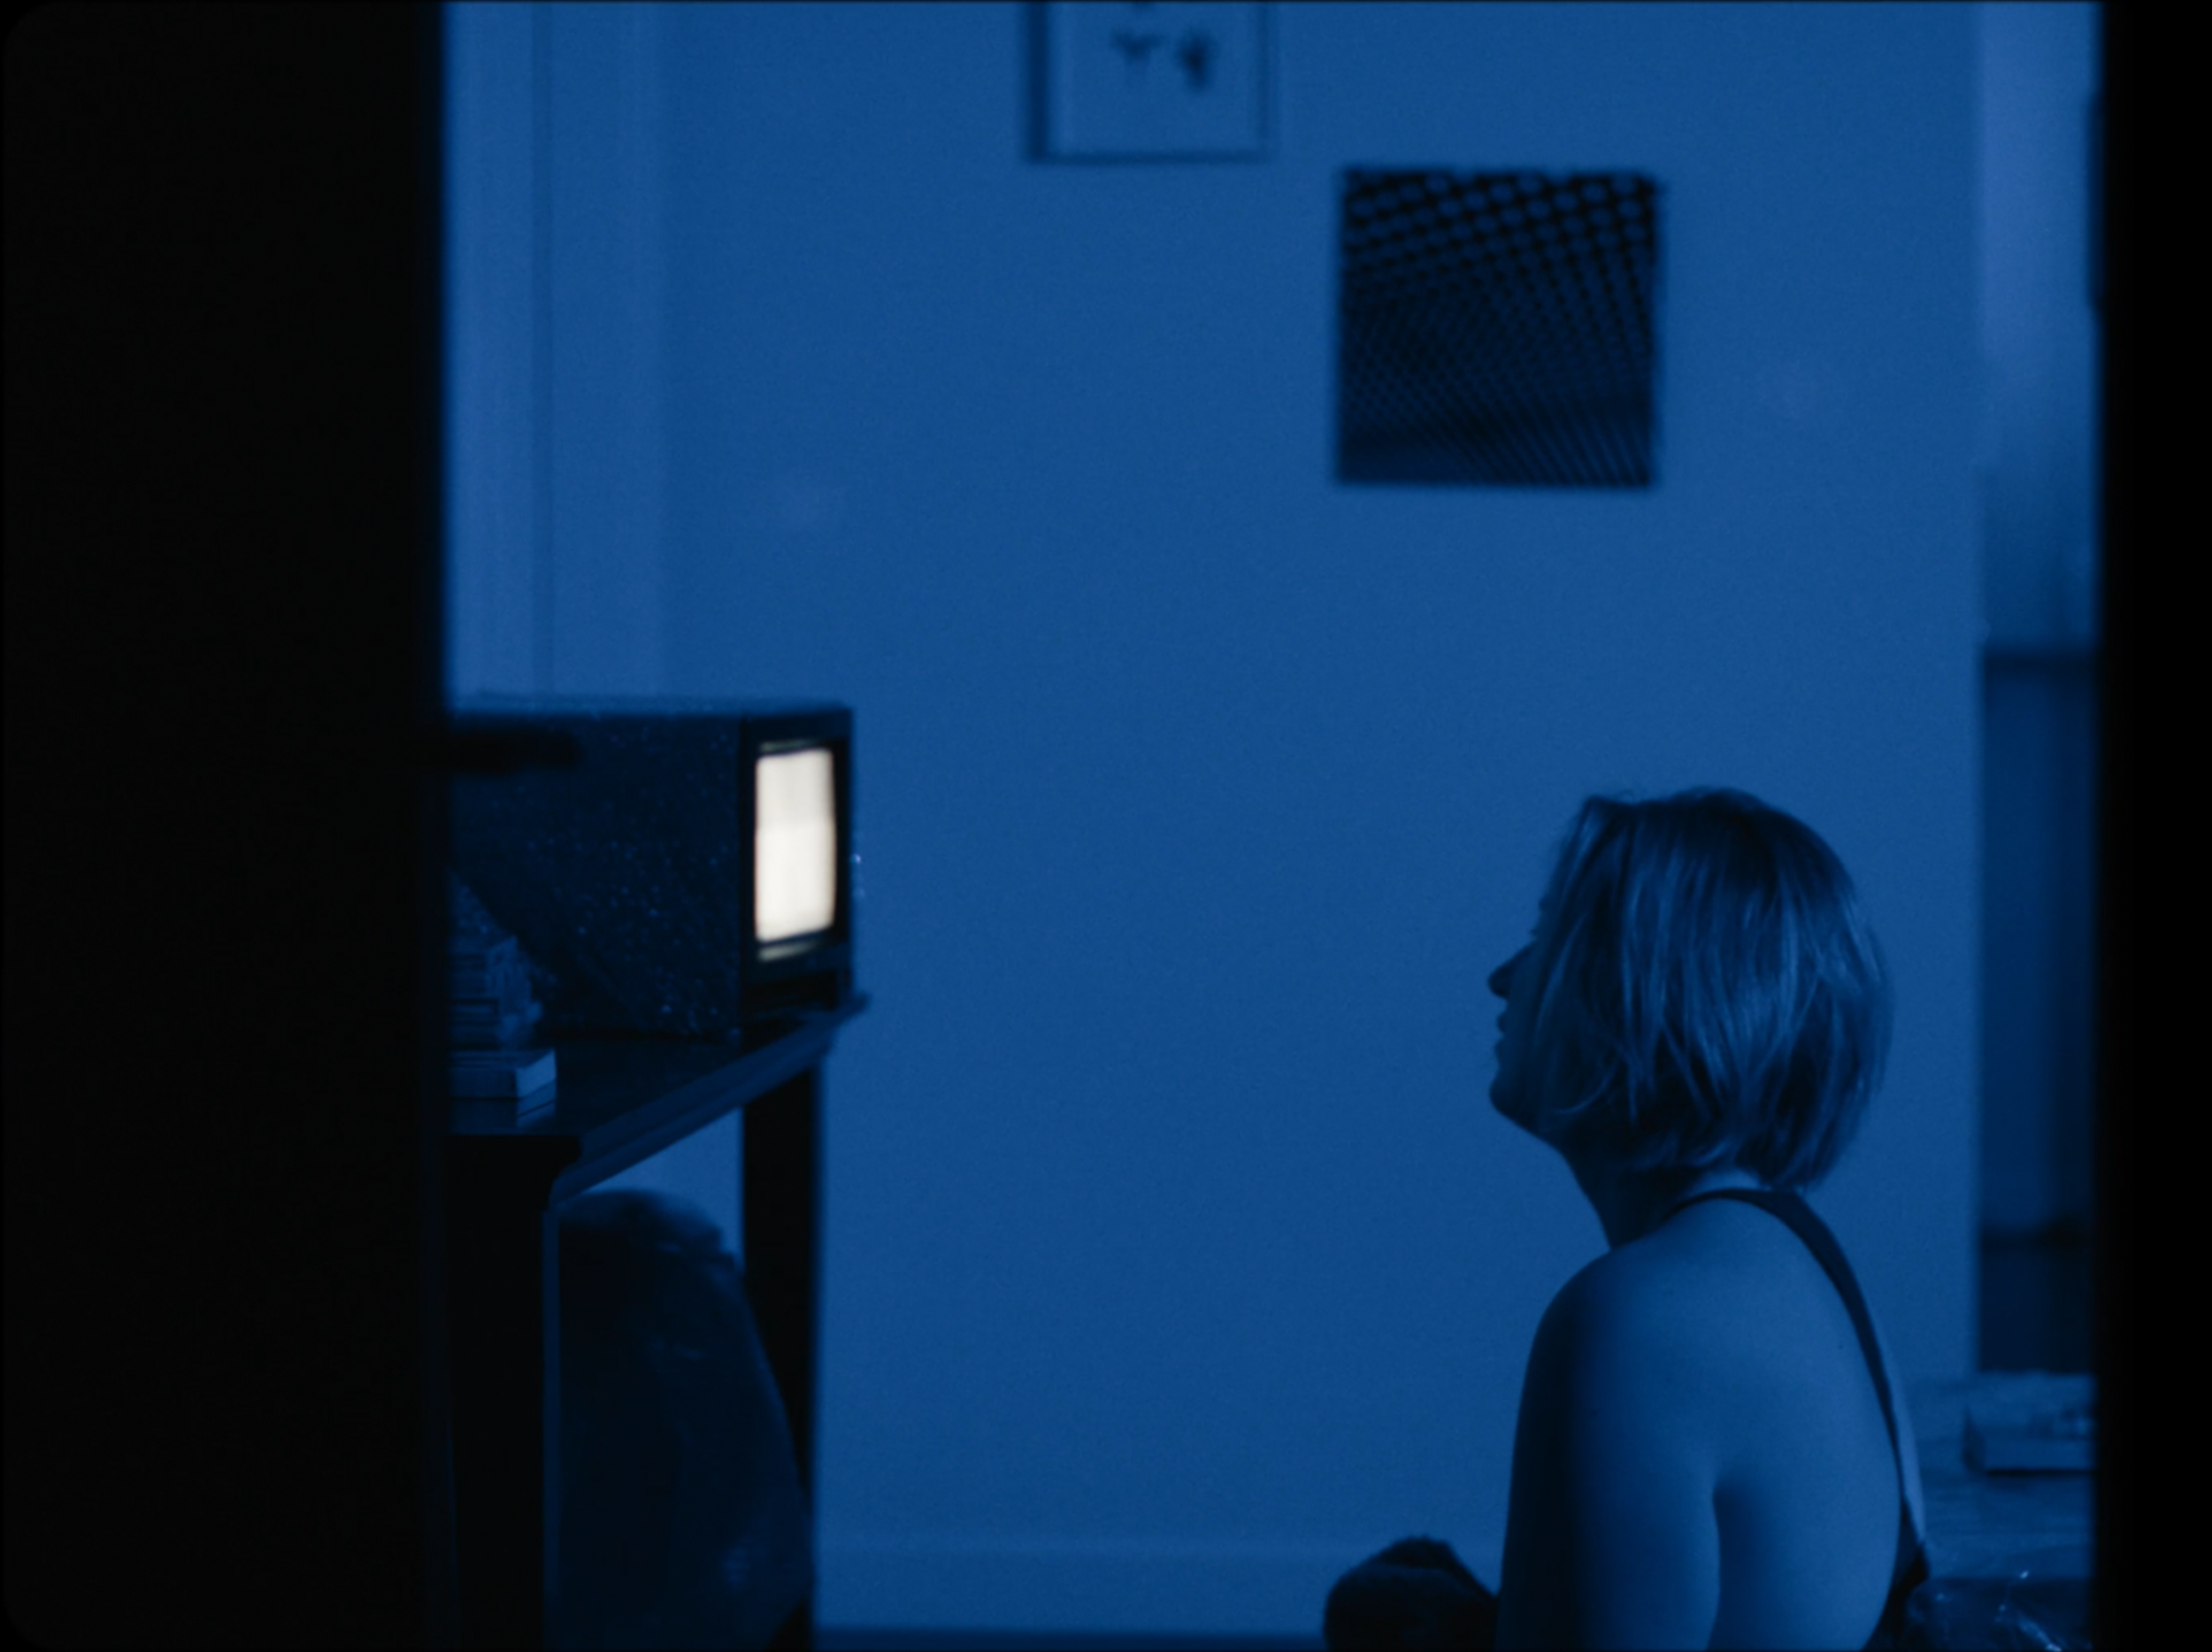 Still from  Watching Us  (2018) where a woman stares at a white TV screen while sitting in a monotone blue room.